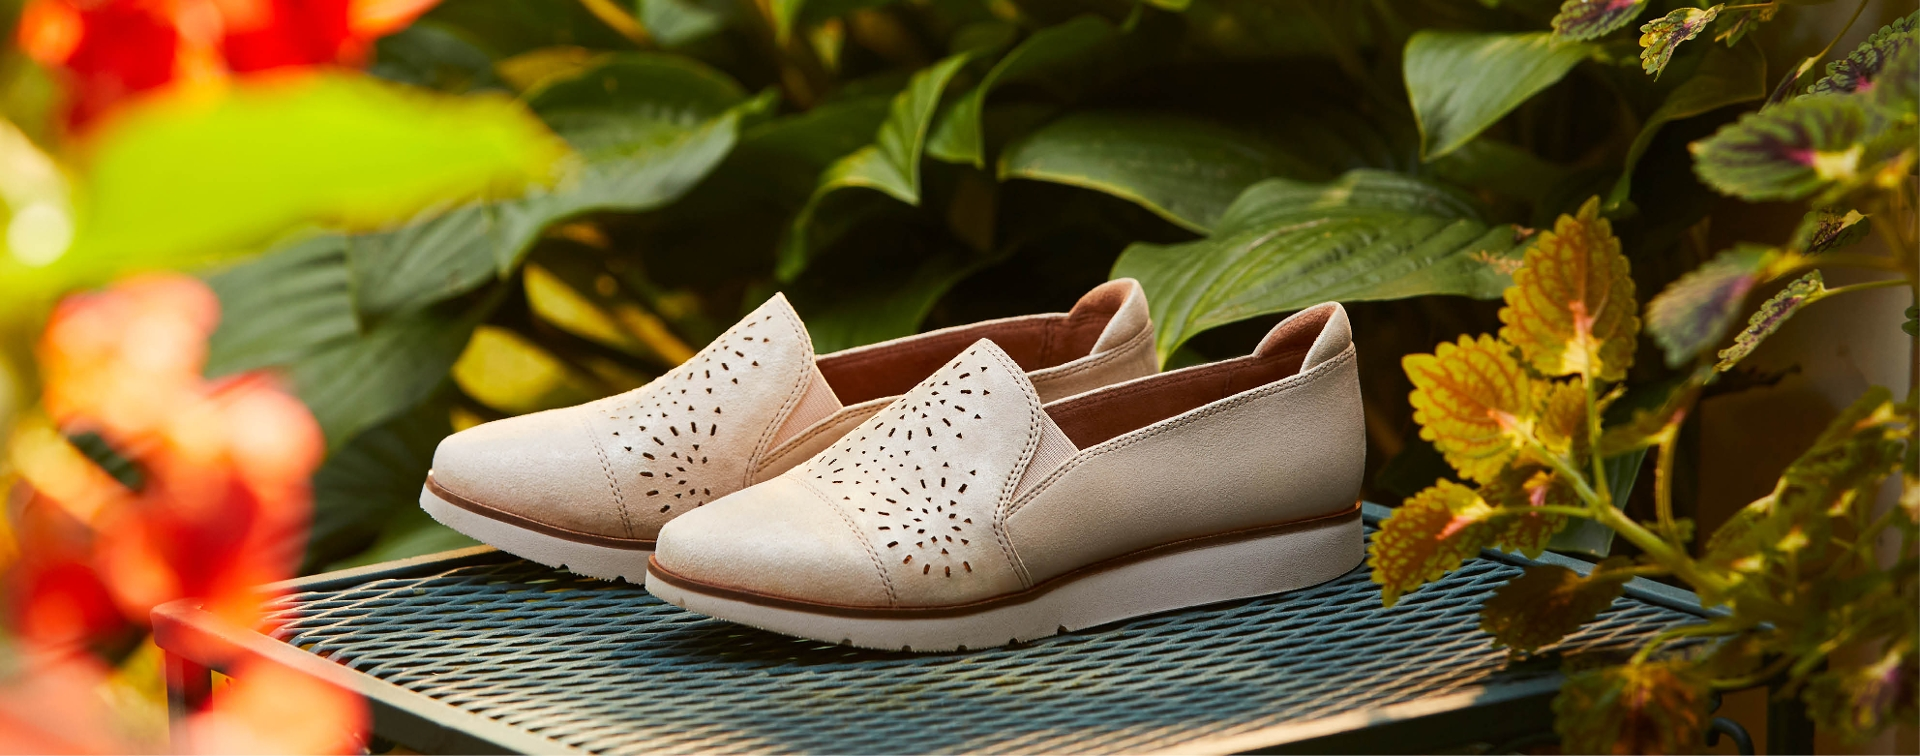 Pair of women's tan shoes sitting near plants.